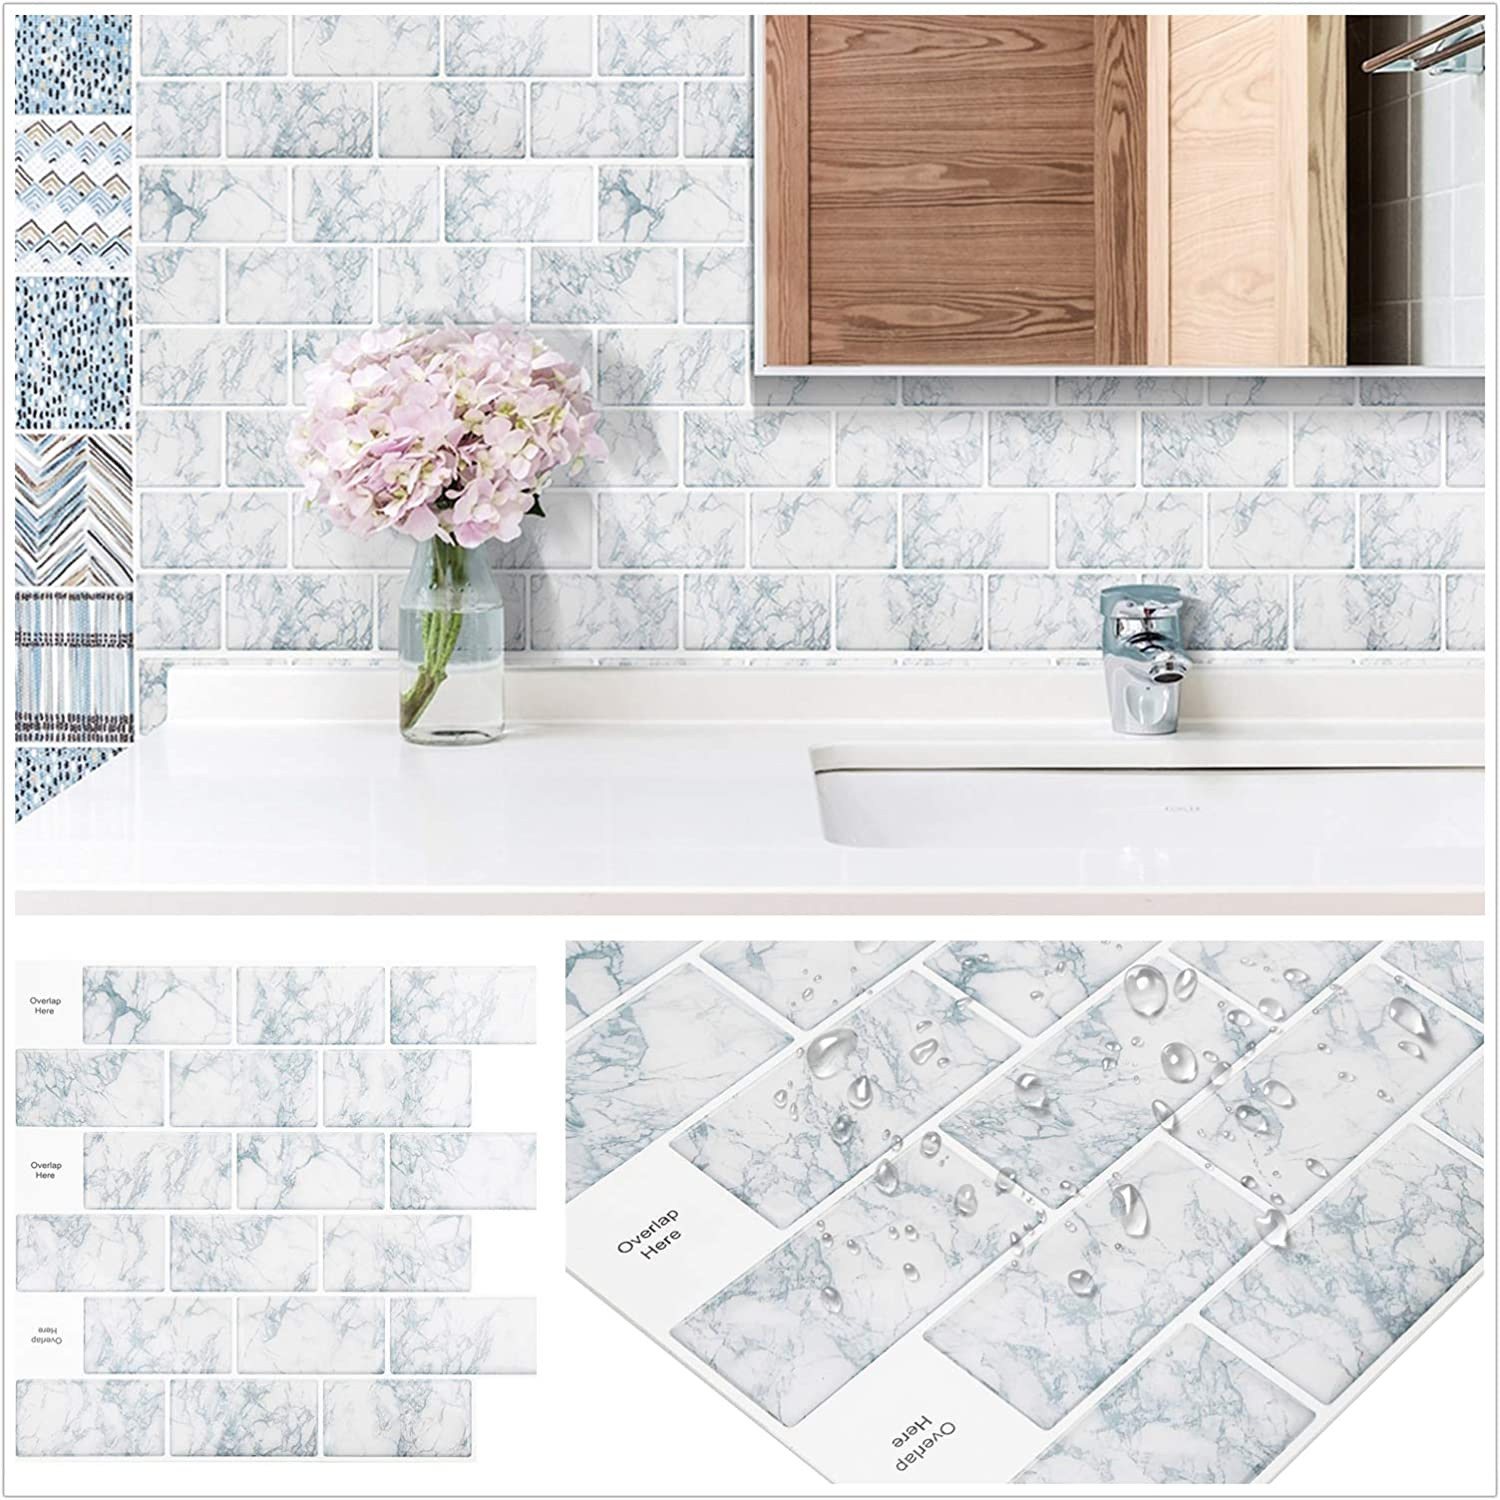 Amazon Com Homeymosaic Subway Peel And Stick Backsplash Tile For Kitchen 12 X12 3d Wall Vinyl Stickers With White Grout 1 Sheet Snowflake Marble White Kitchen Dining